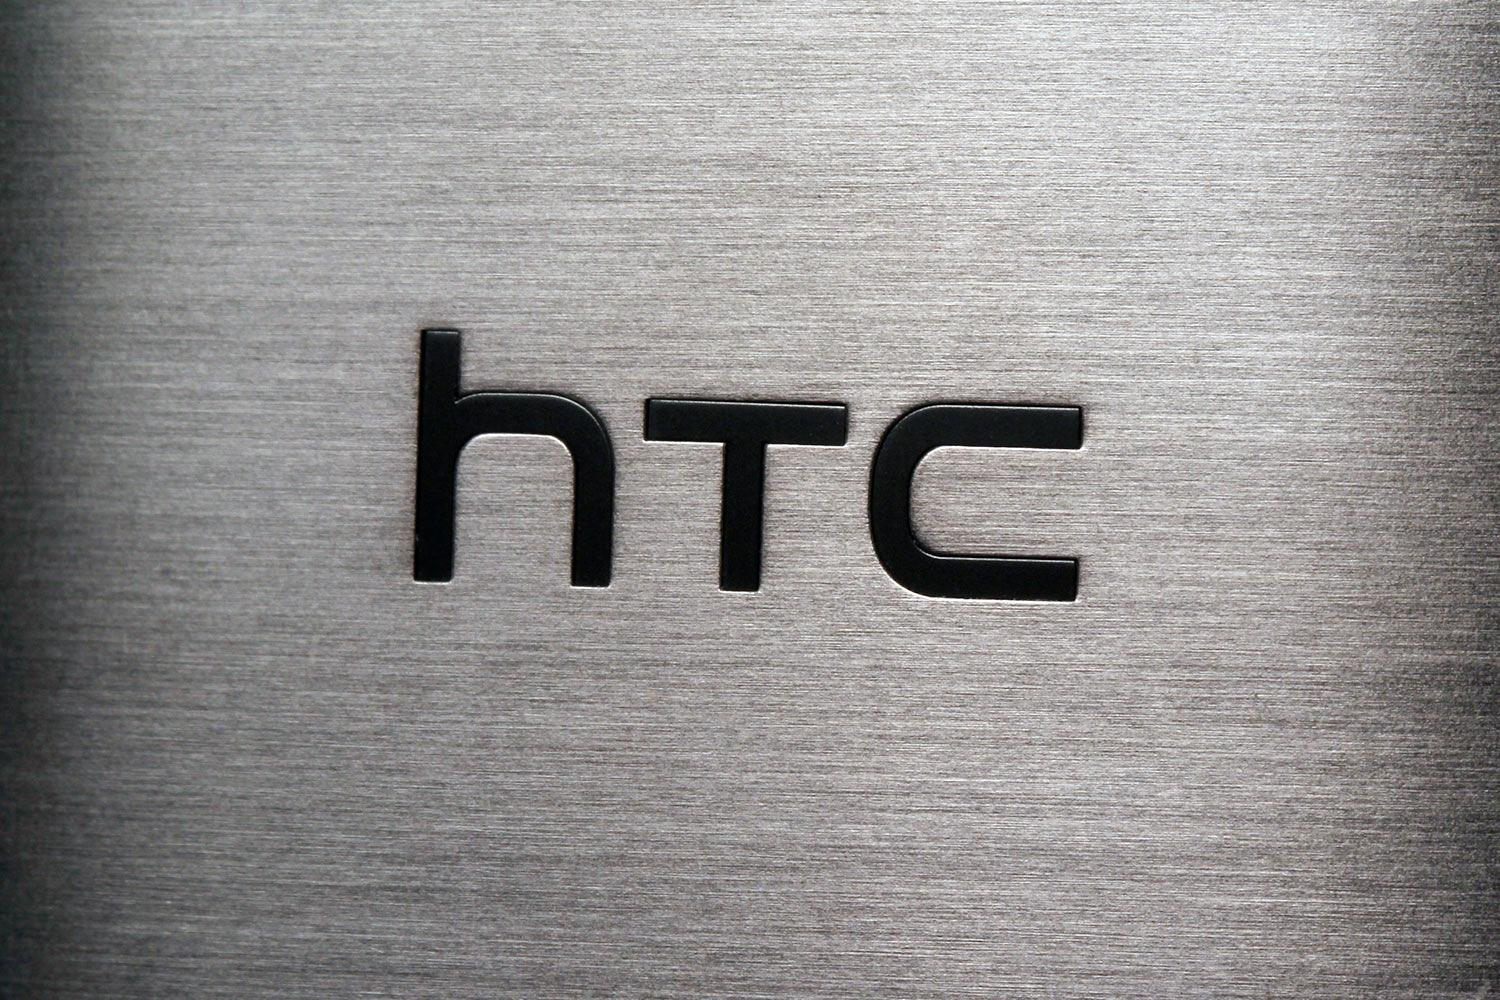 htc t1 android nexus